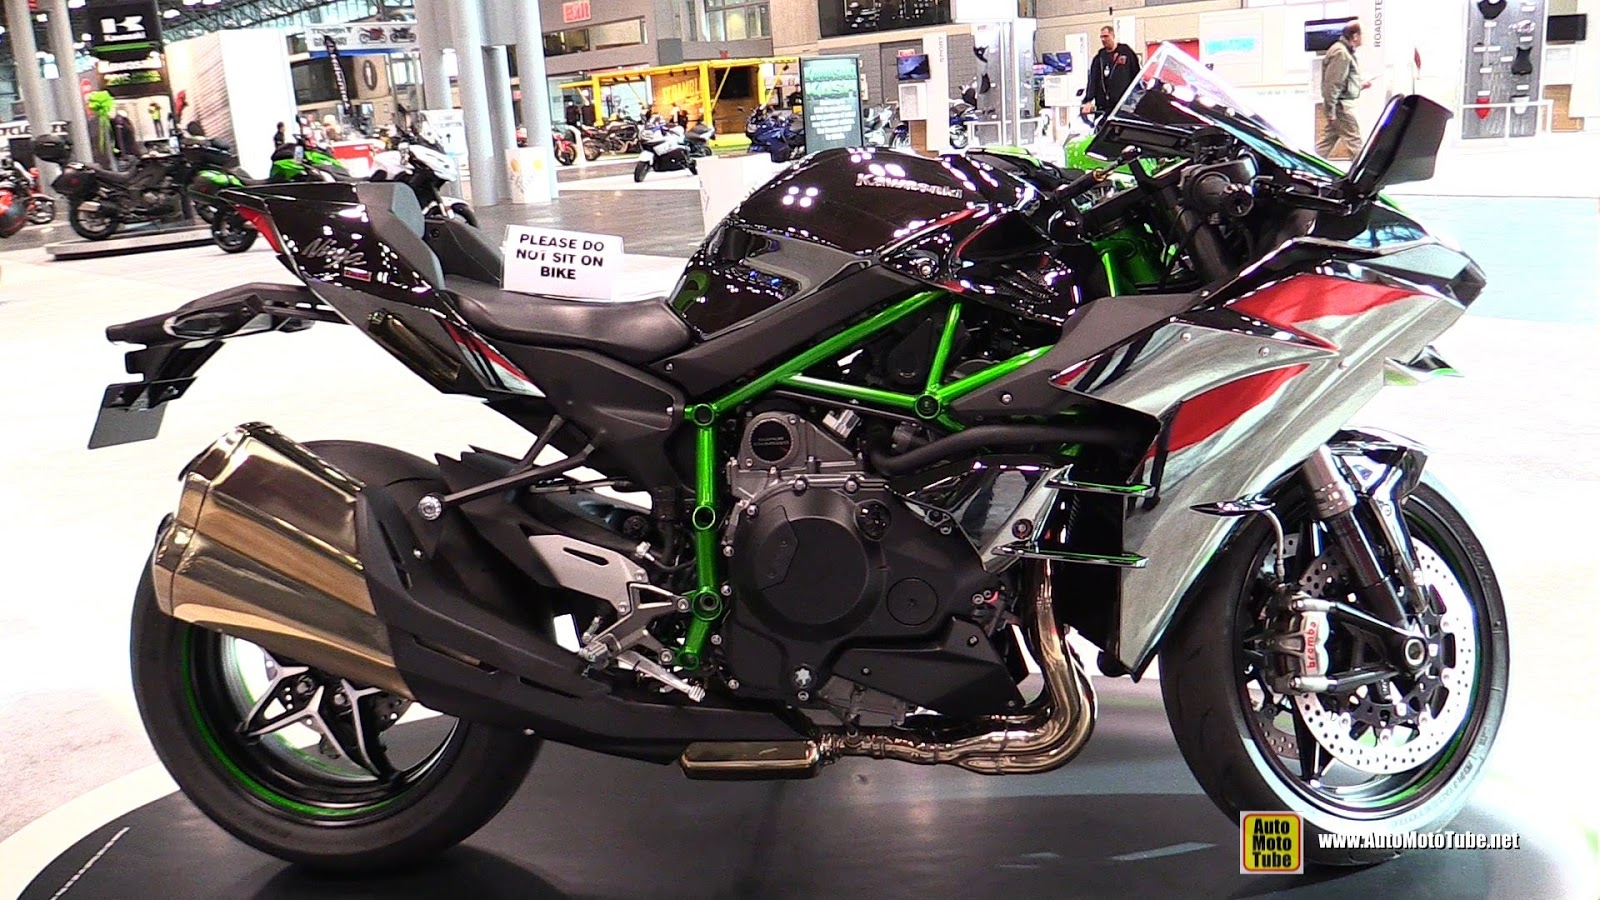 2015 Kawasaki Ninja H2 Test Review Auto Motorcycles Z1000 Lighting System Circuit A Specialist To Don Canet On The And H2r Beginning Dispatch At Losail In Qatar They Were Going For Exciting Got It